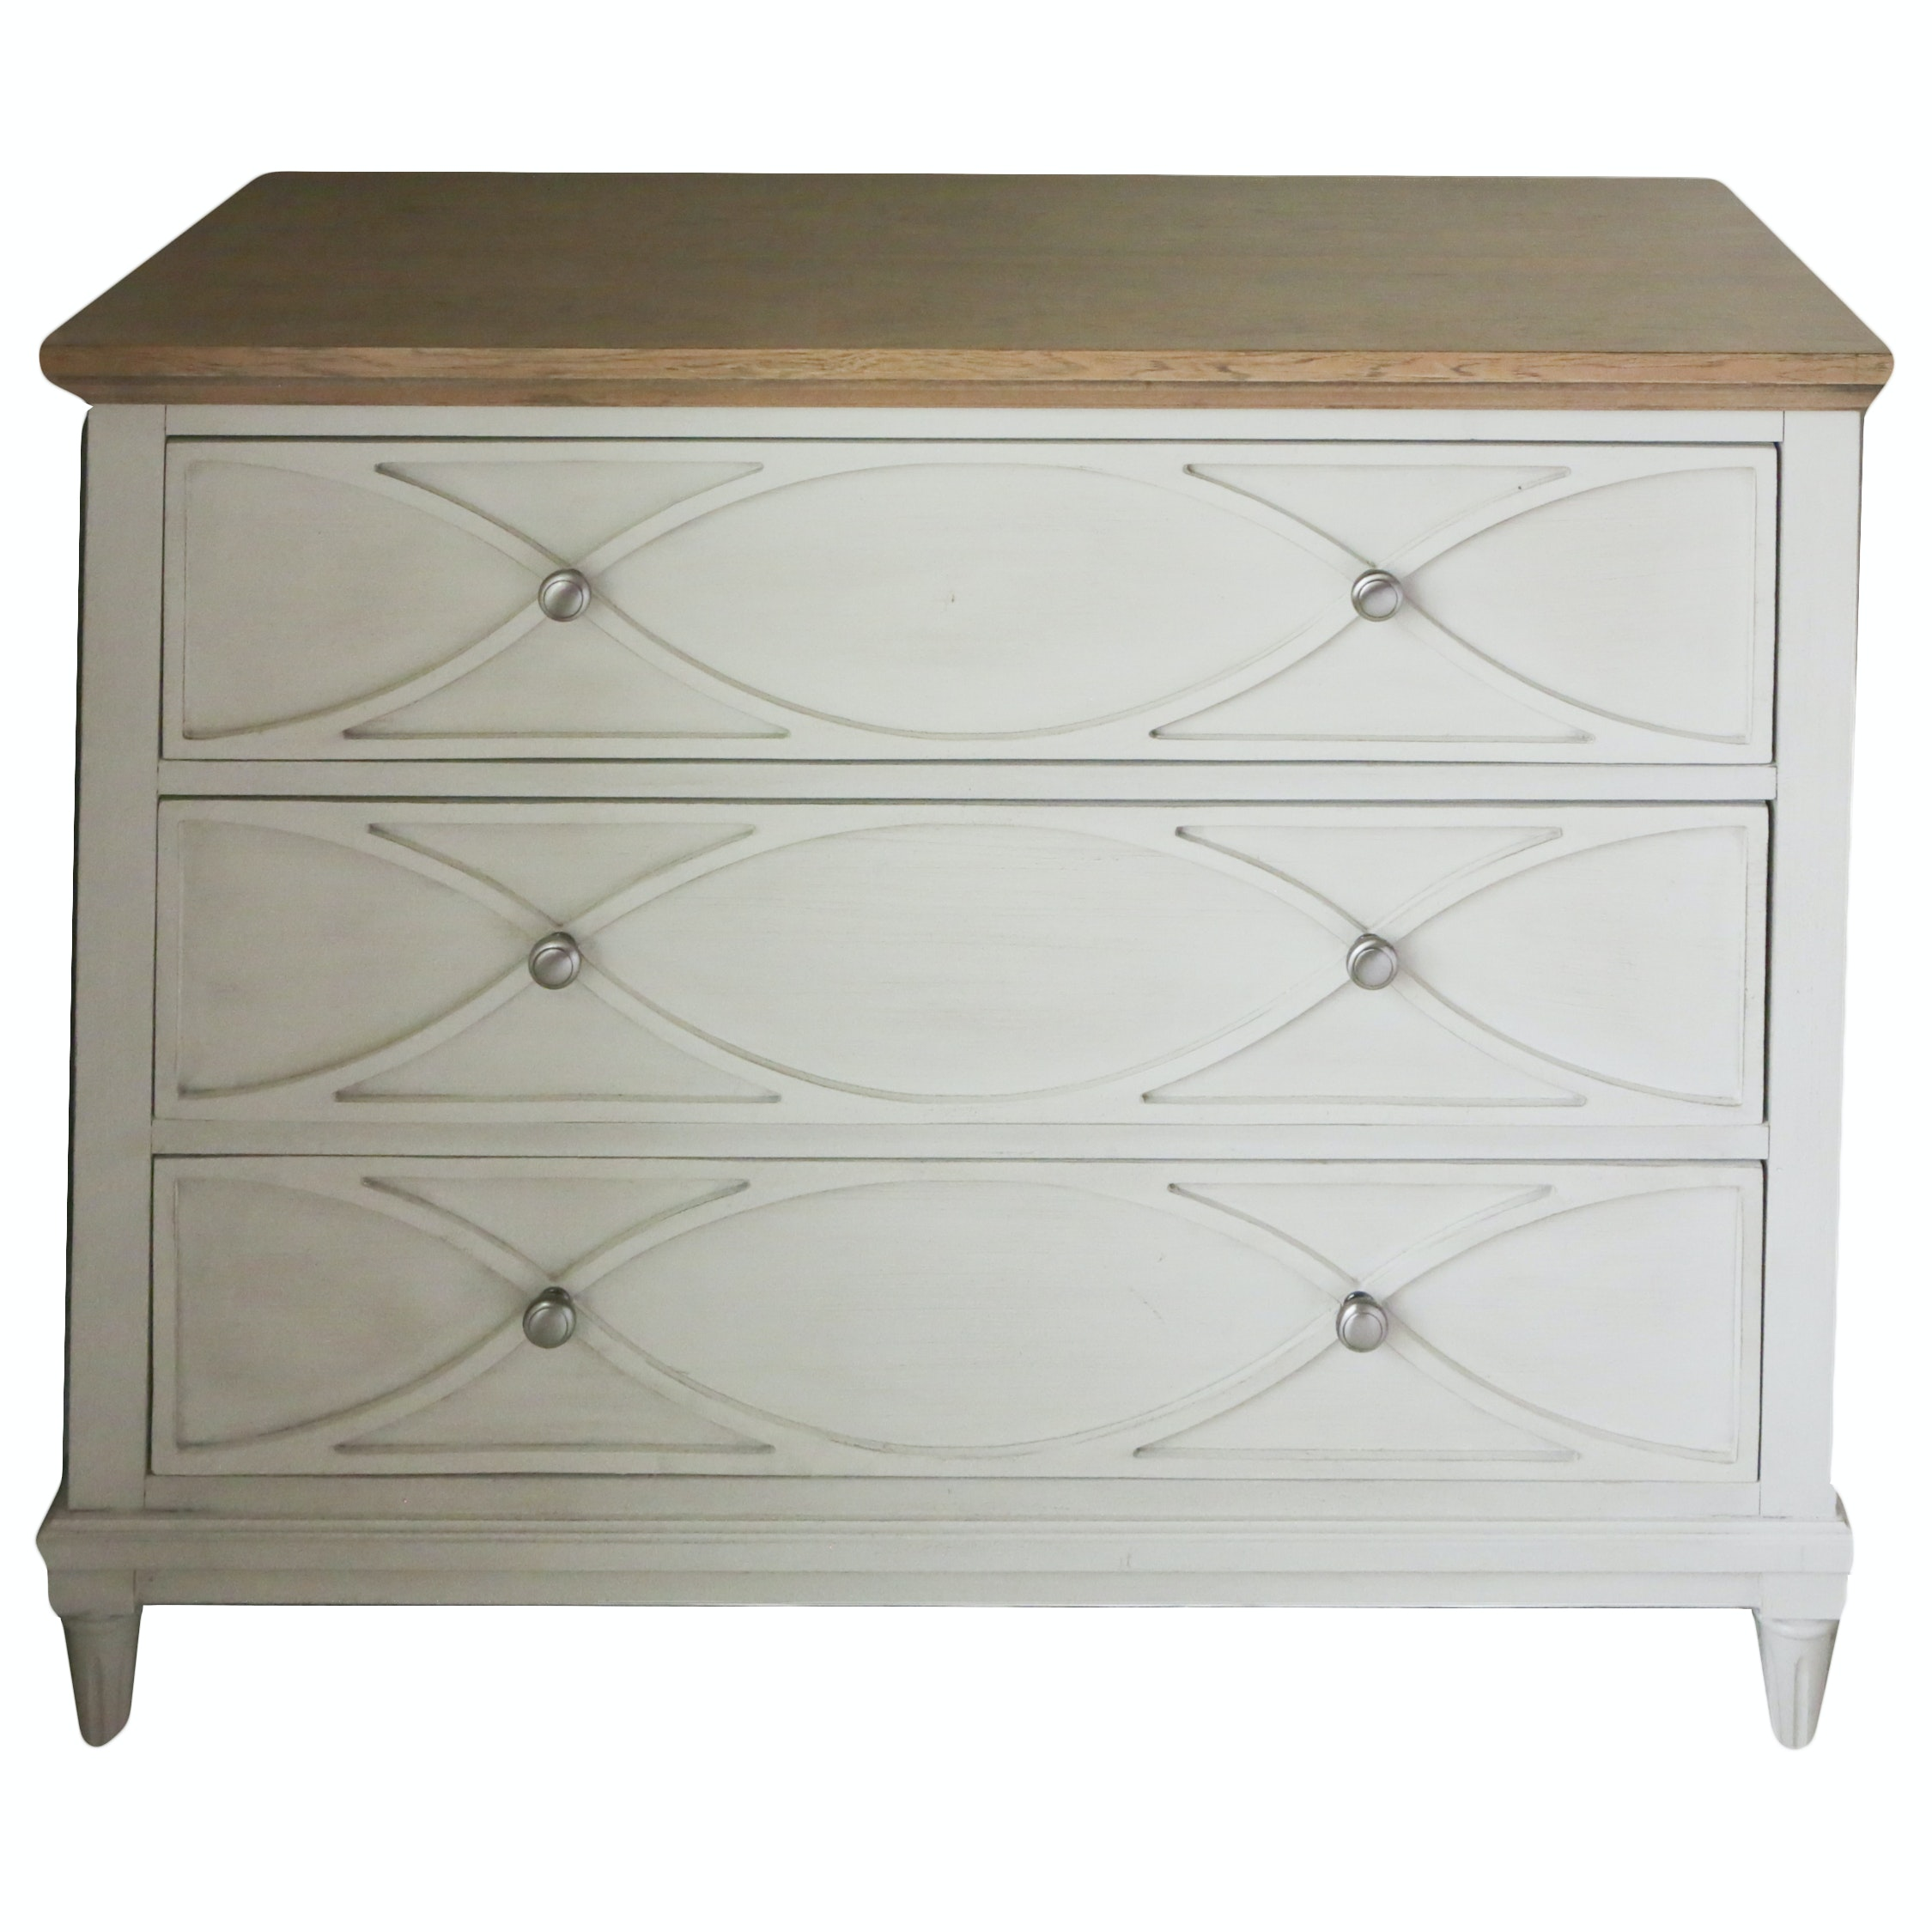 Gustavian Style Chest of Drawers by Universal